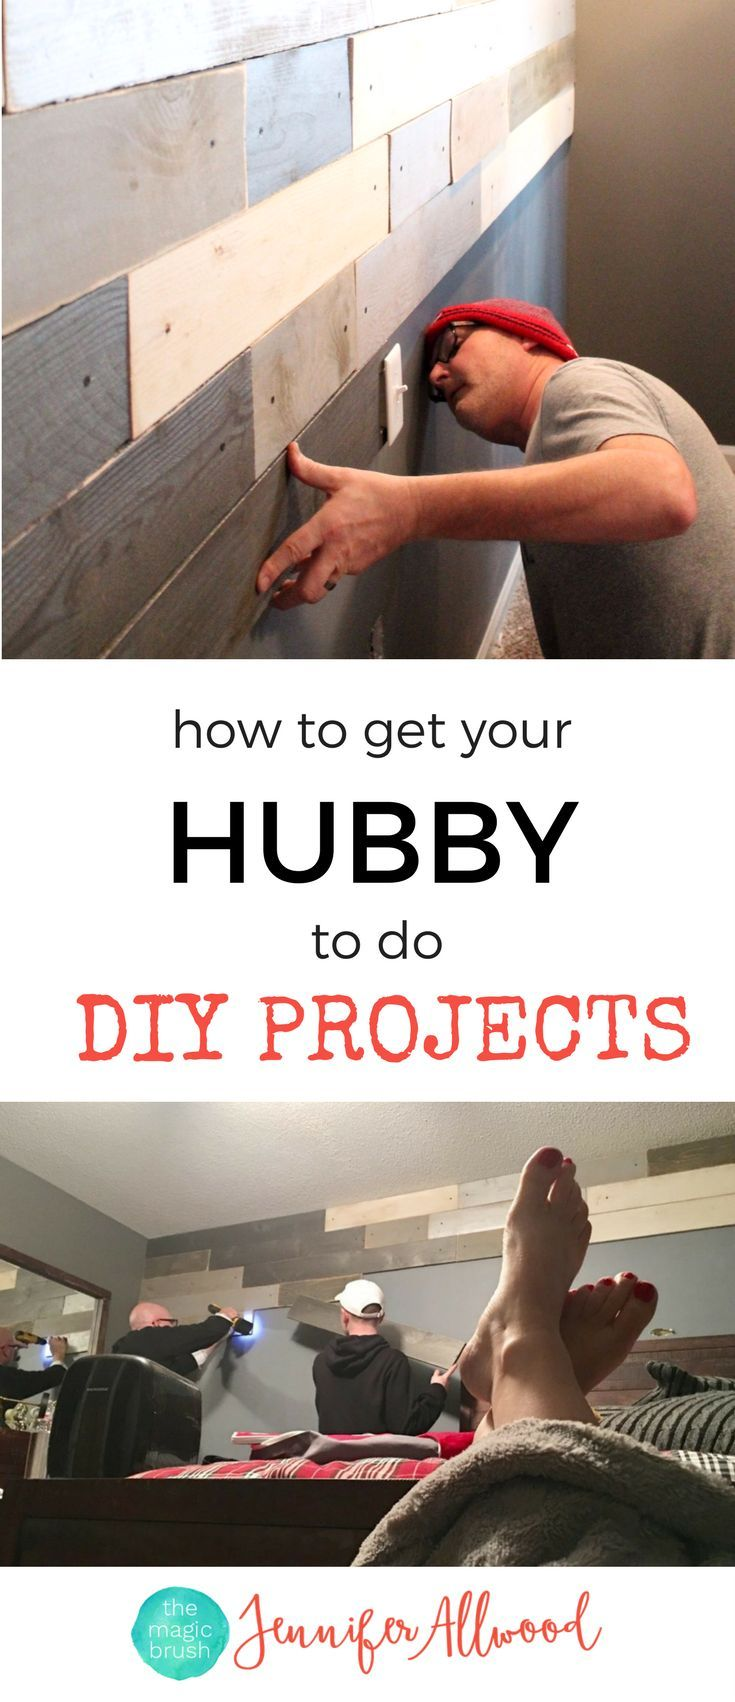 How to's : How to get your hubby to do   your DIY projects around the house. Get that honey-do list tackled without nagging -  Marriage & Home Renovation Tips by designer Jennifer Allwood. Get those home improvement projects finished! #diy #diyprojects